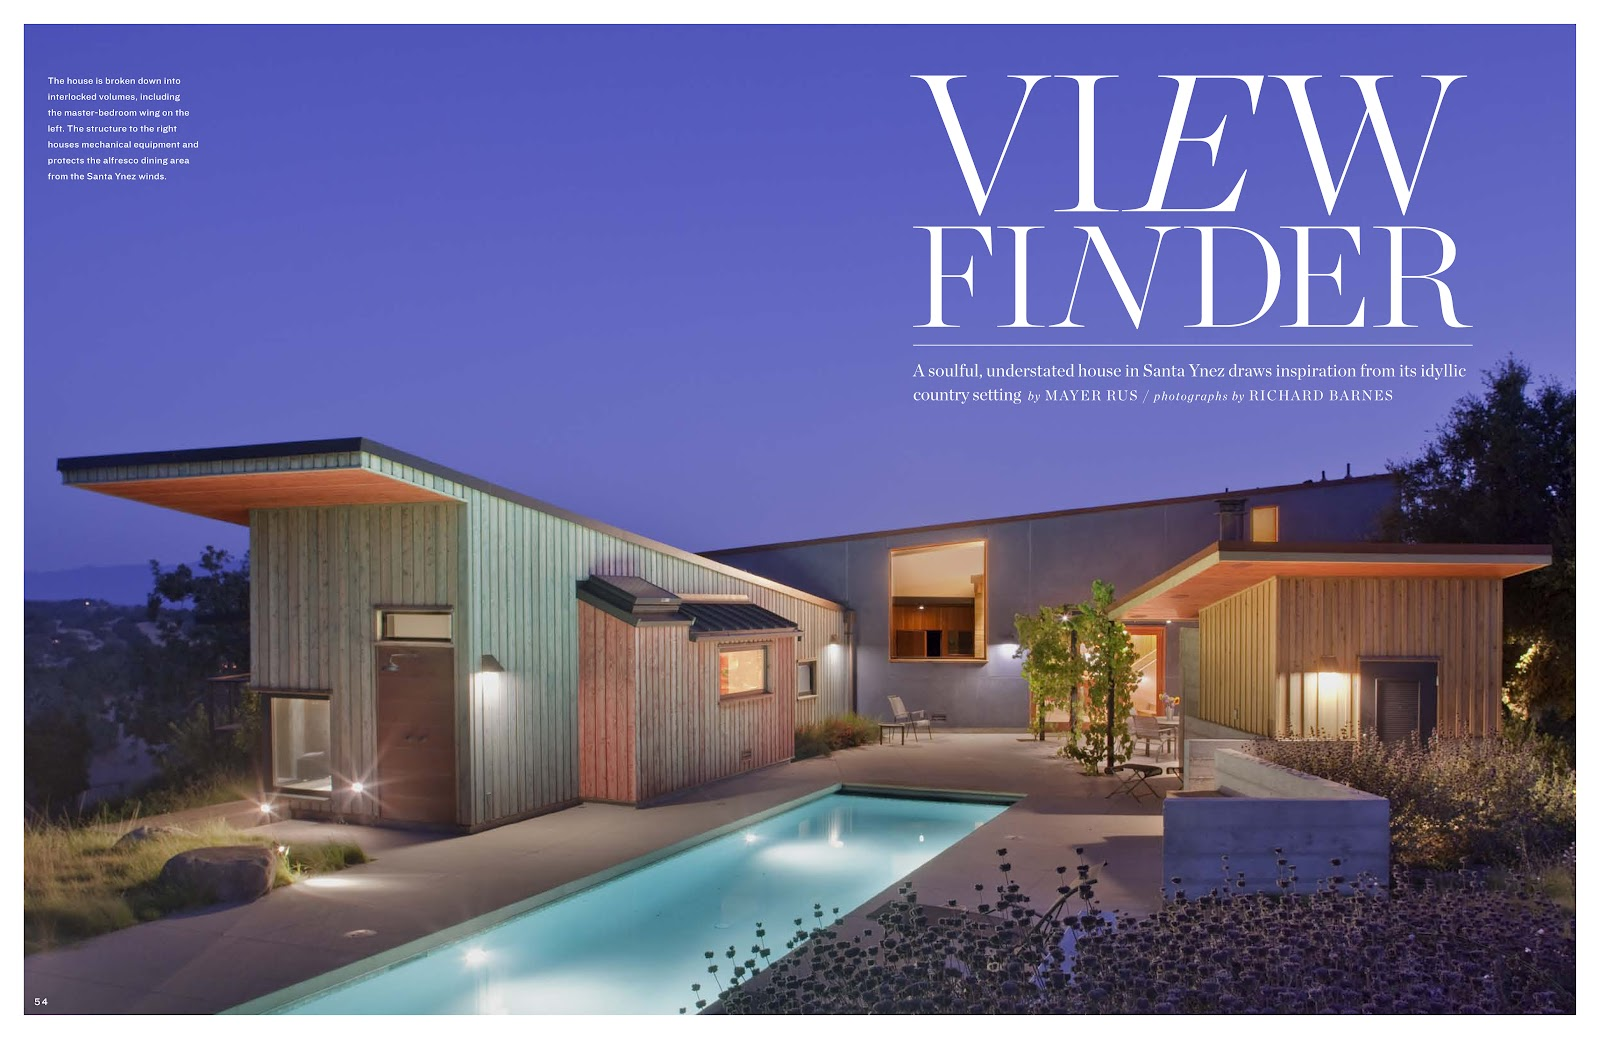 Fernau & Hartman Updates: Santa Ynez House in the LA Times Magazine